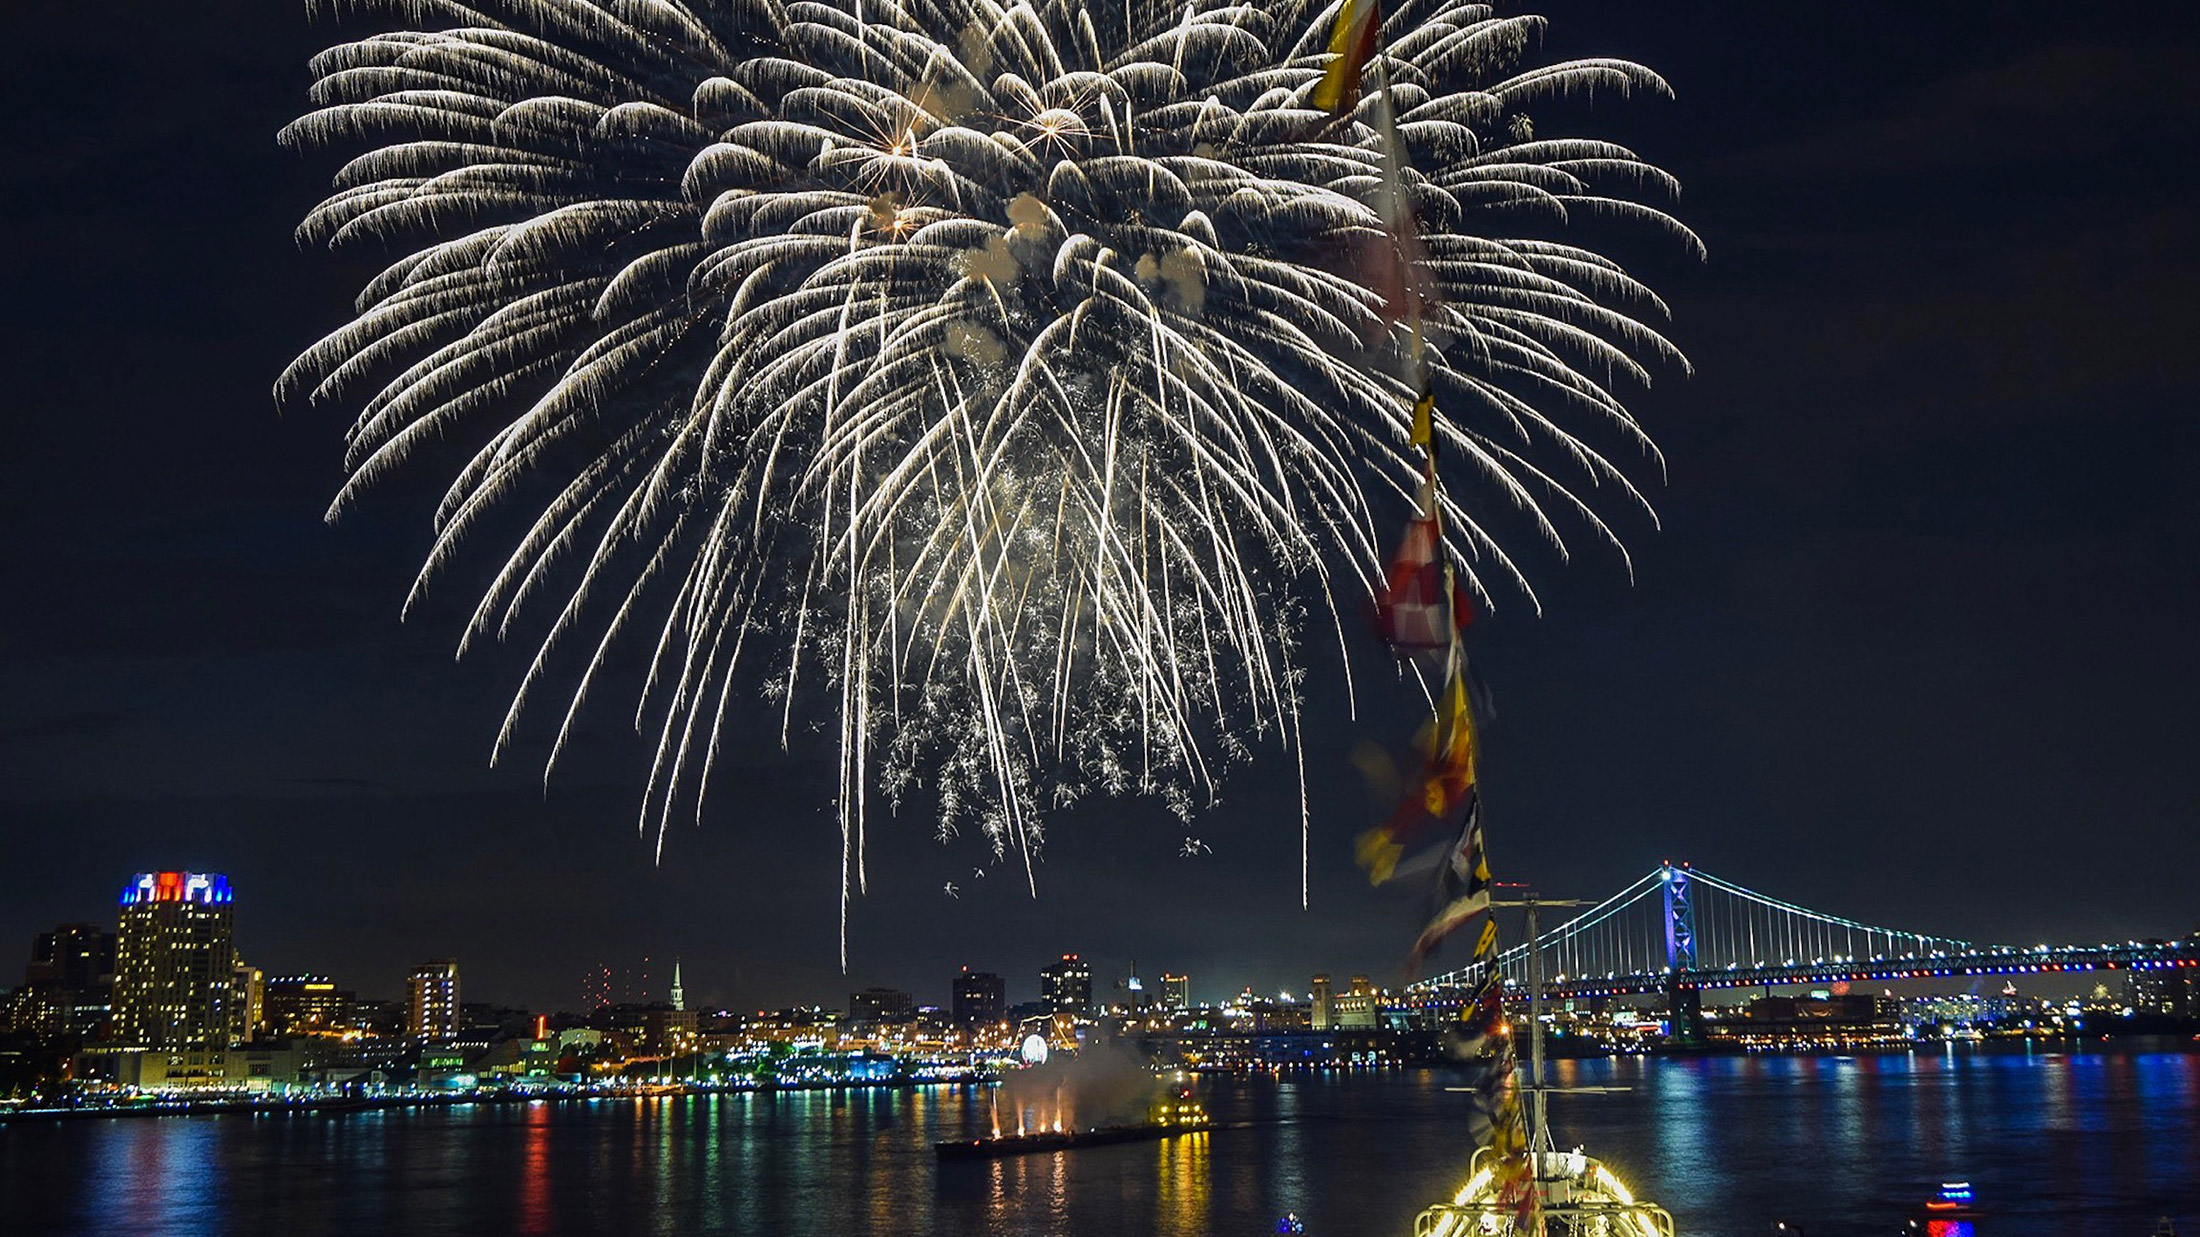 Inside Halloween Events 2020 Near Camden Ny Where to Watch New Year's Eve Fireworks in Philly for 2019/2020